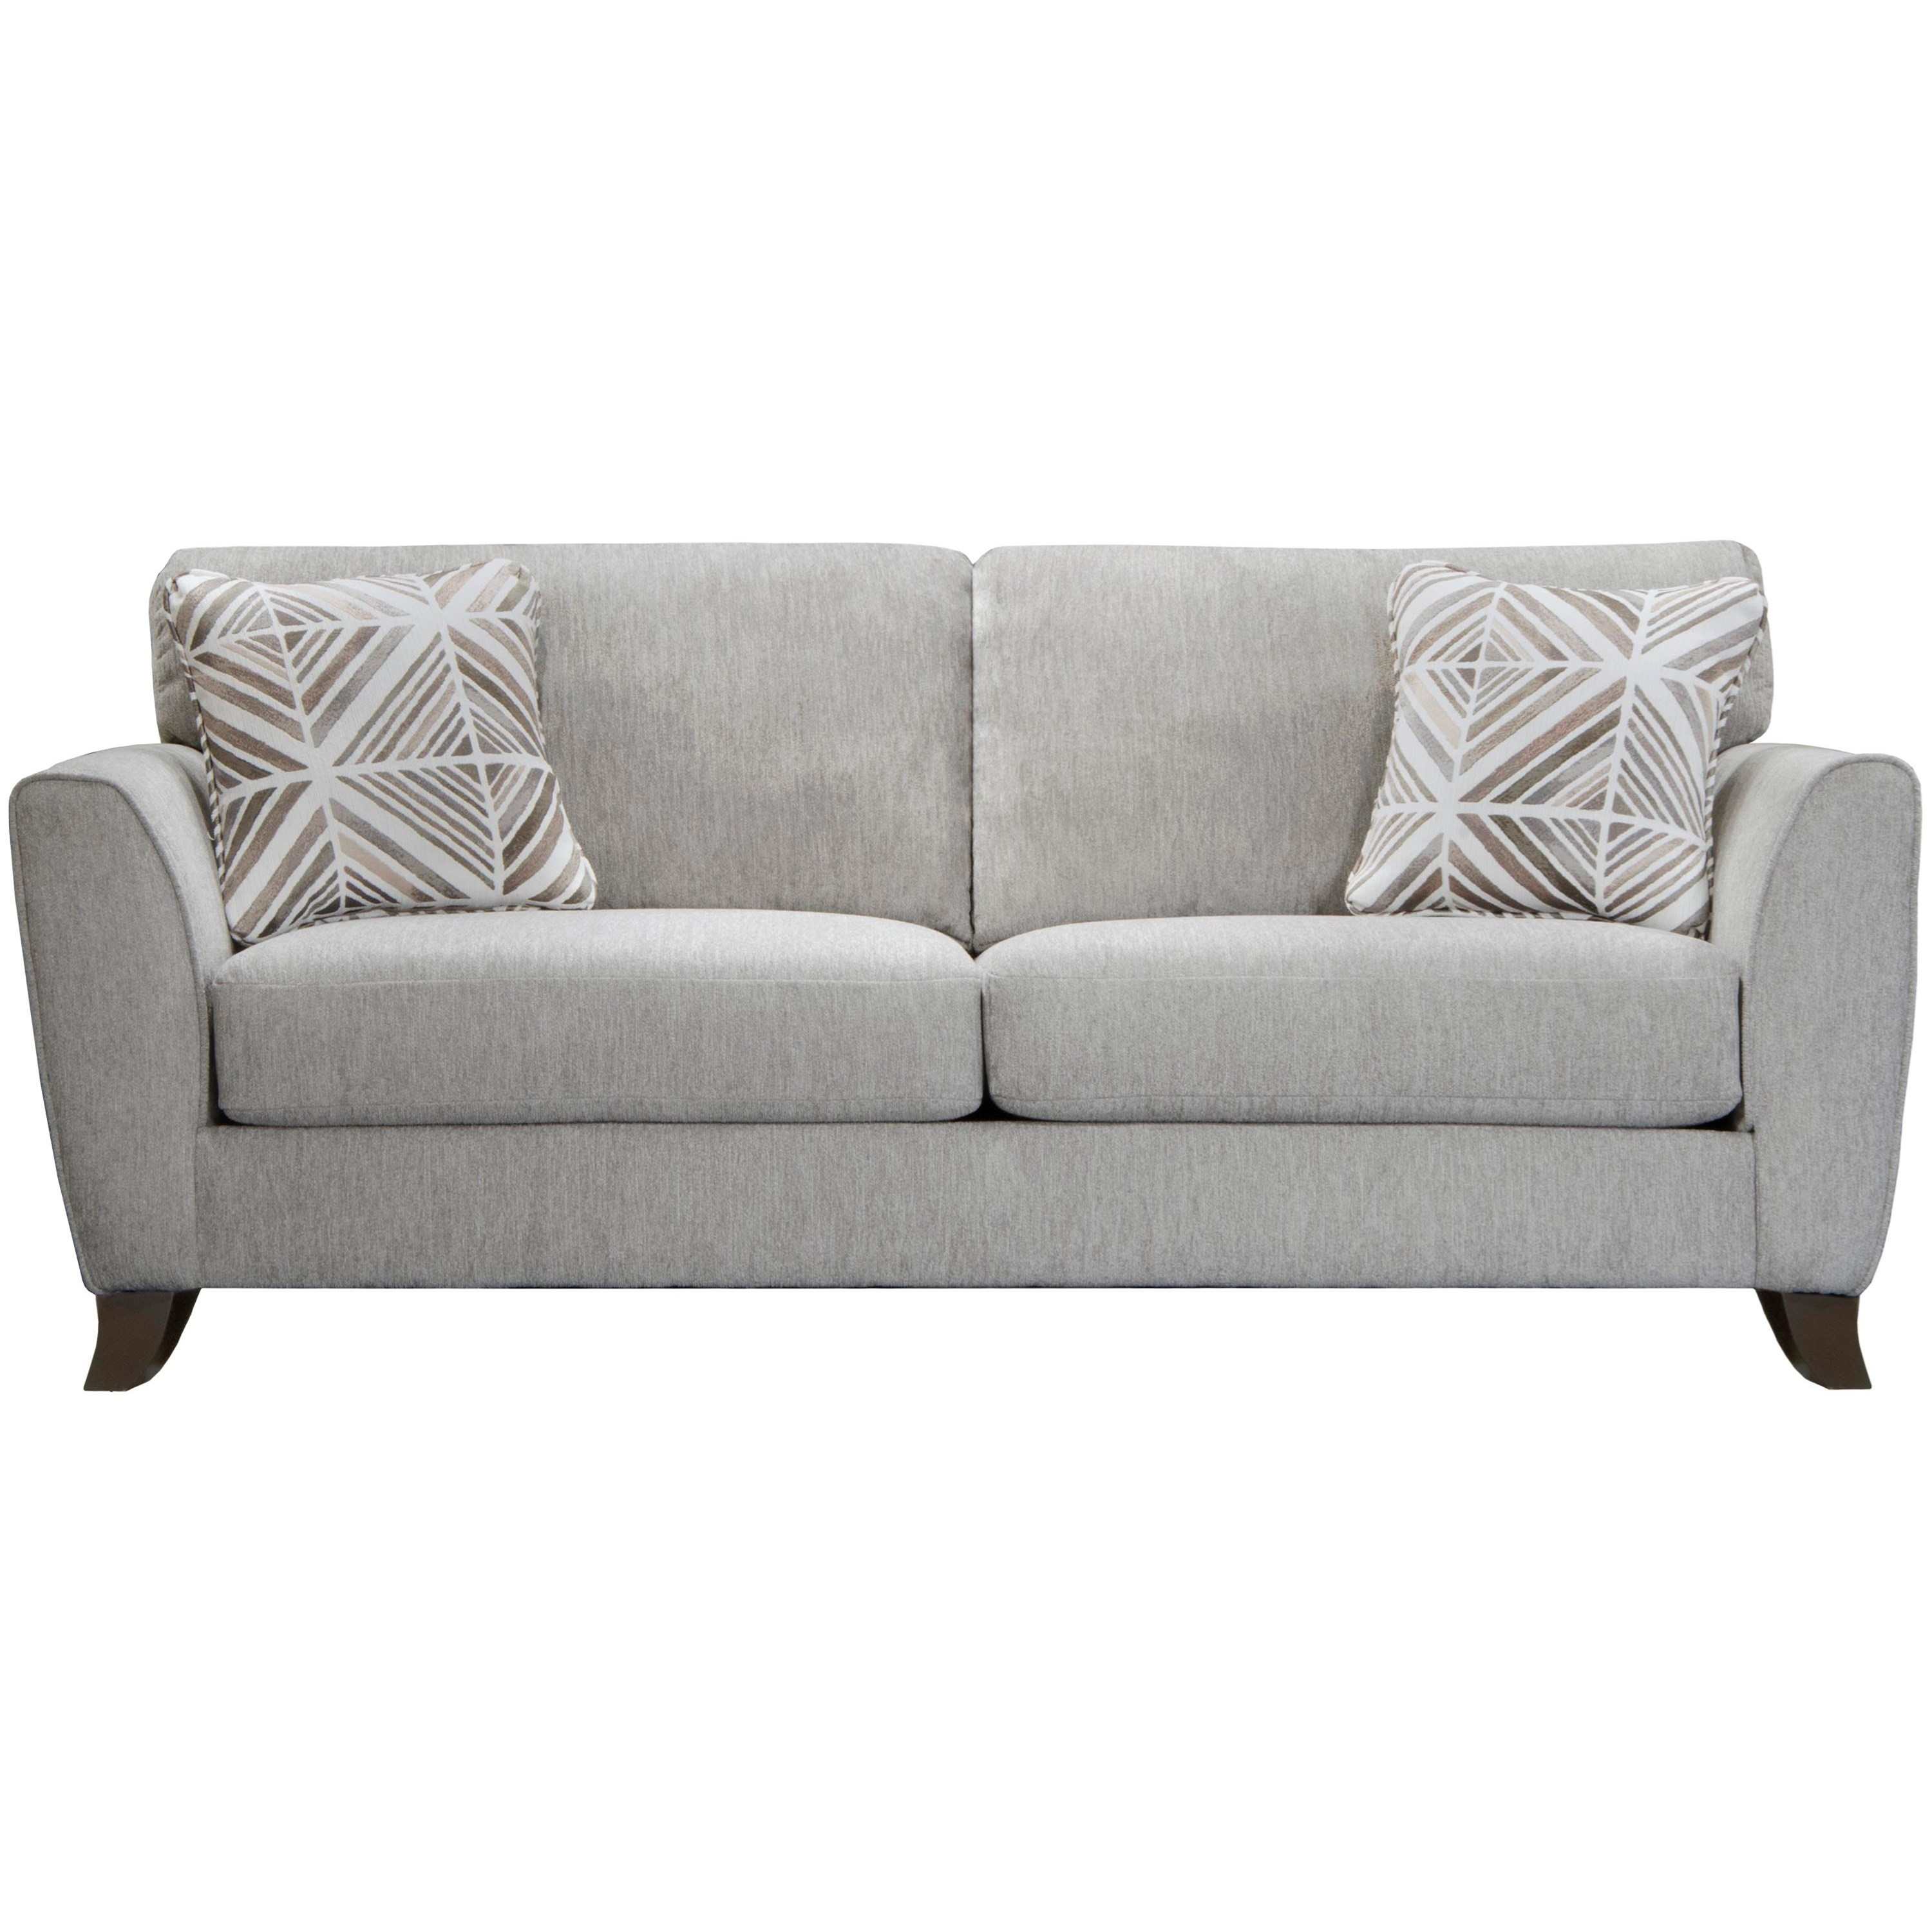 Alyssa Sofa by Jackson Furniture at Zak's Warehouse Clearance Center